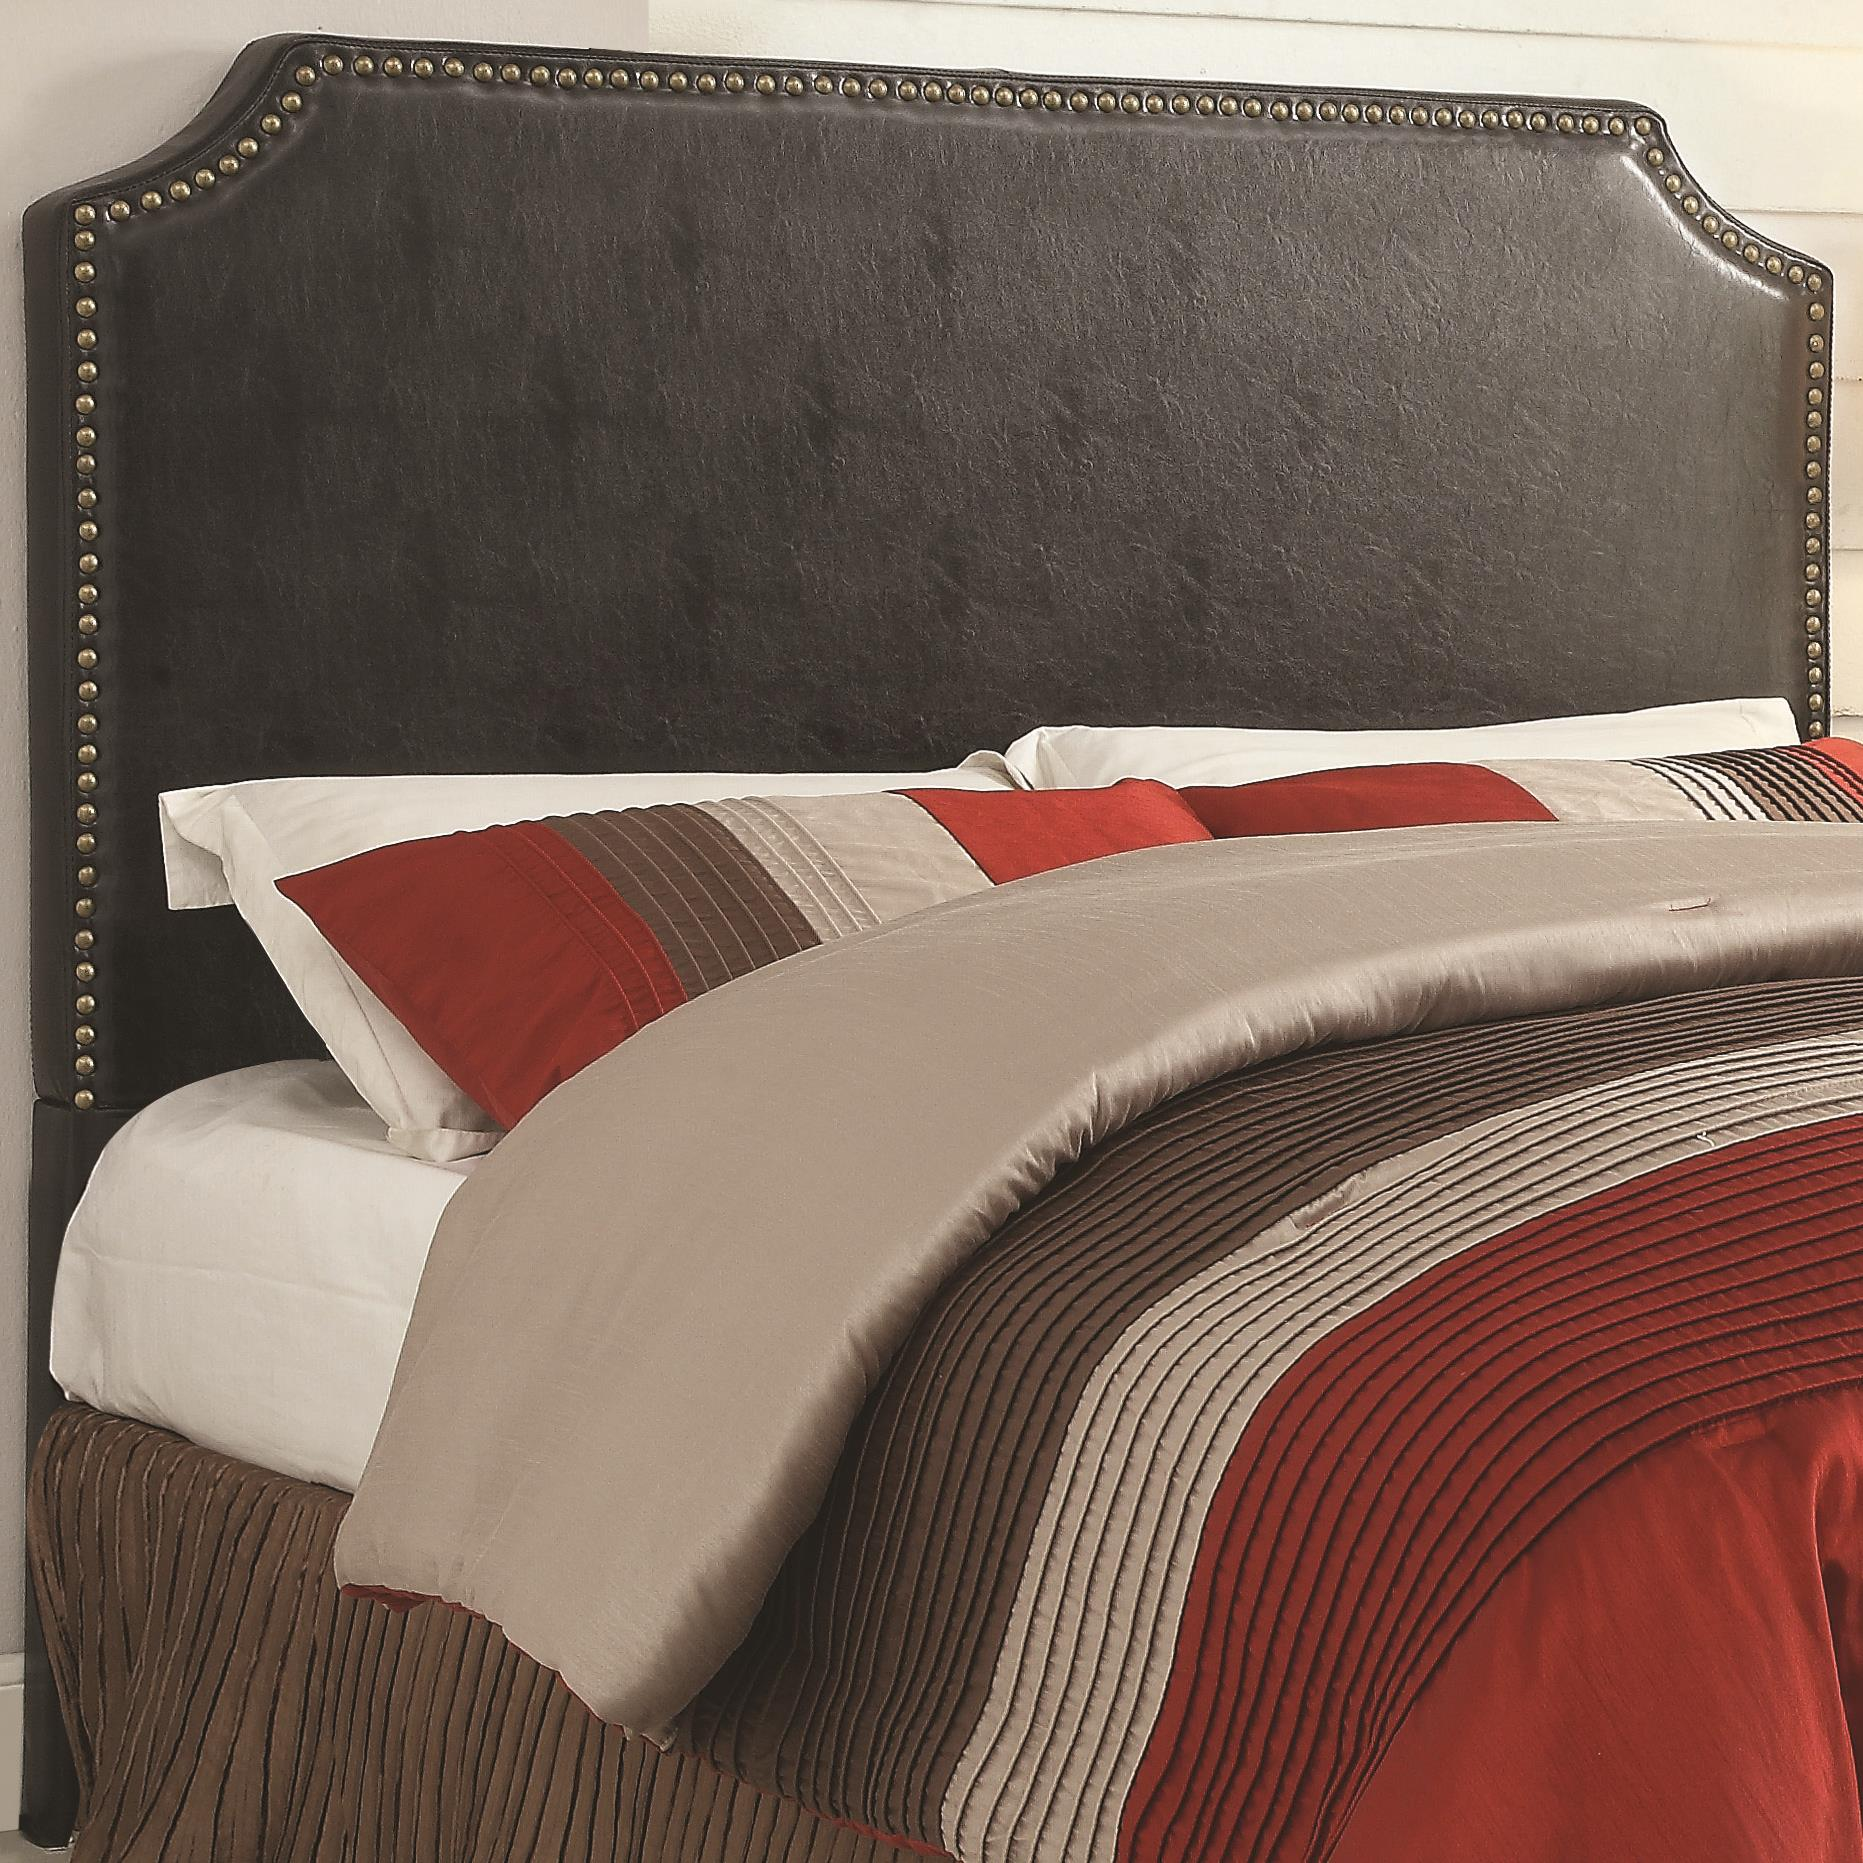 Coaster Upholstered Beds King/ Cal King Novato Upholstered Headboard - Item Number: 300455K